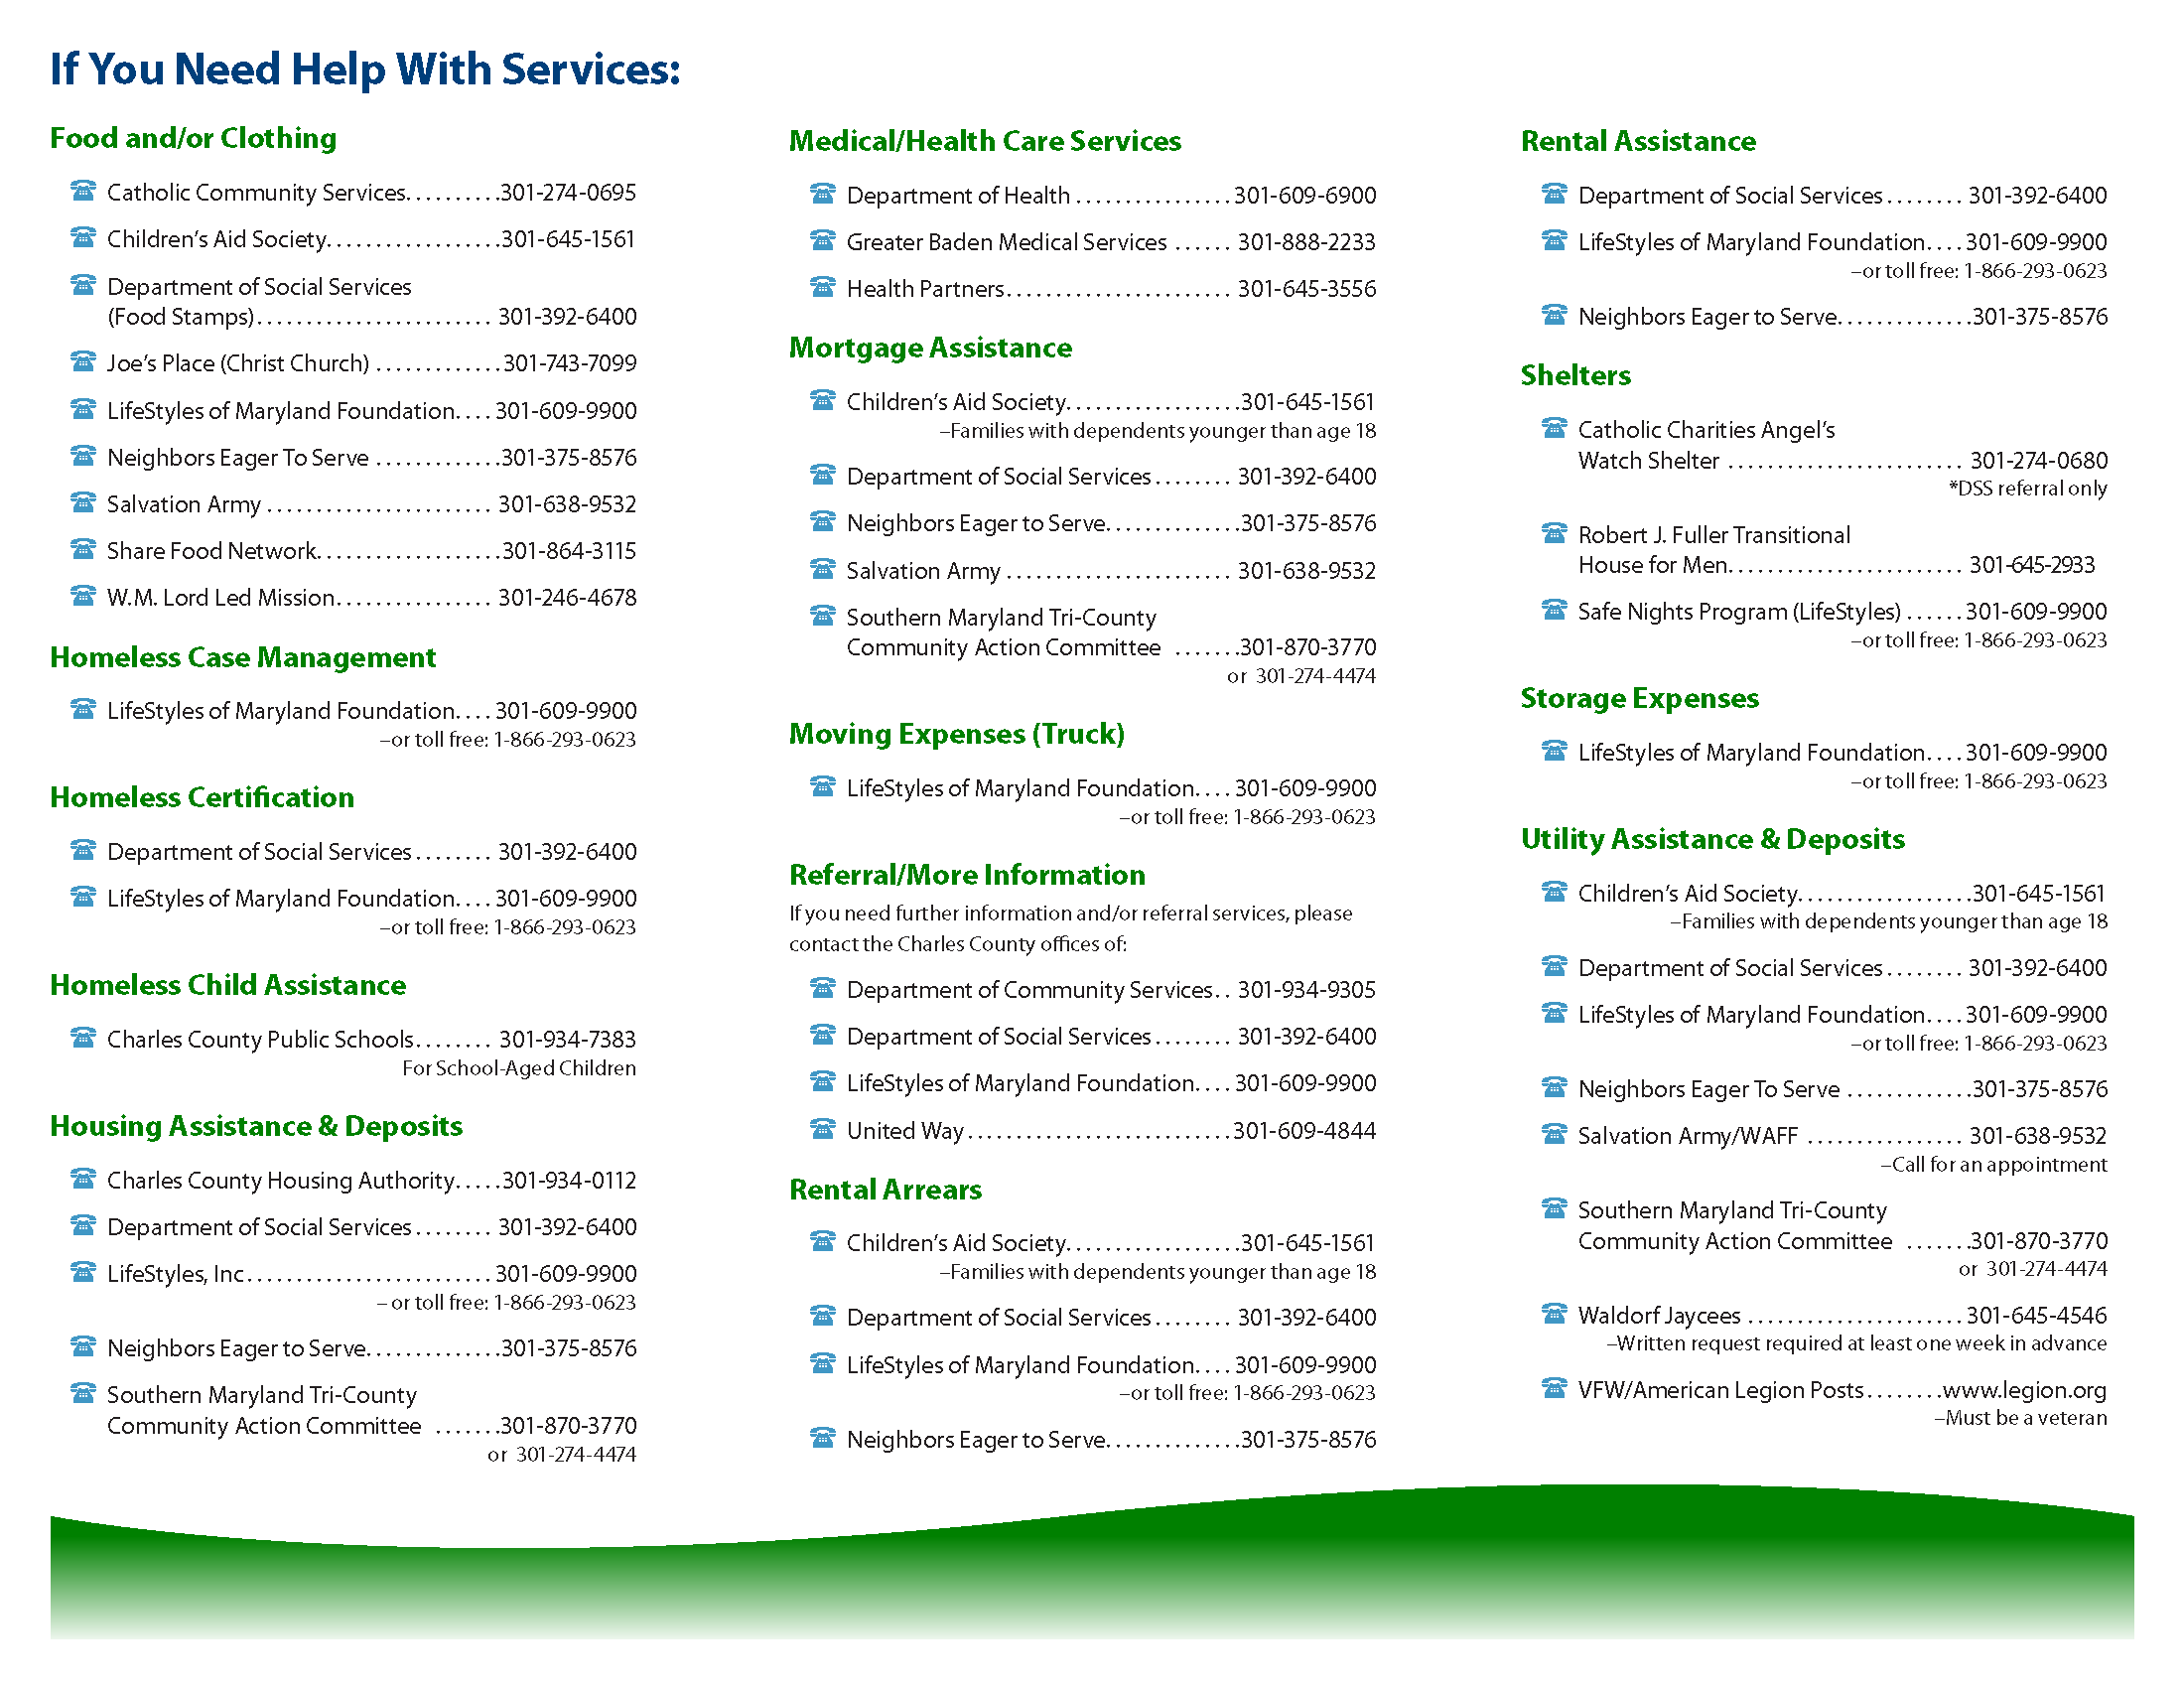 Image #1 Chart from Charles County Government website